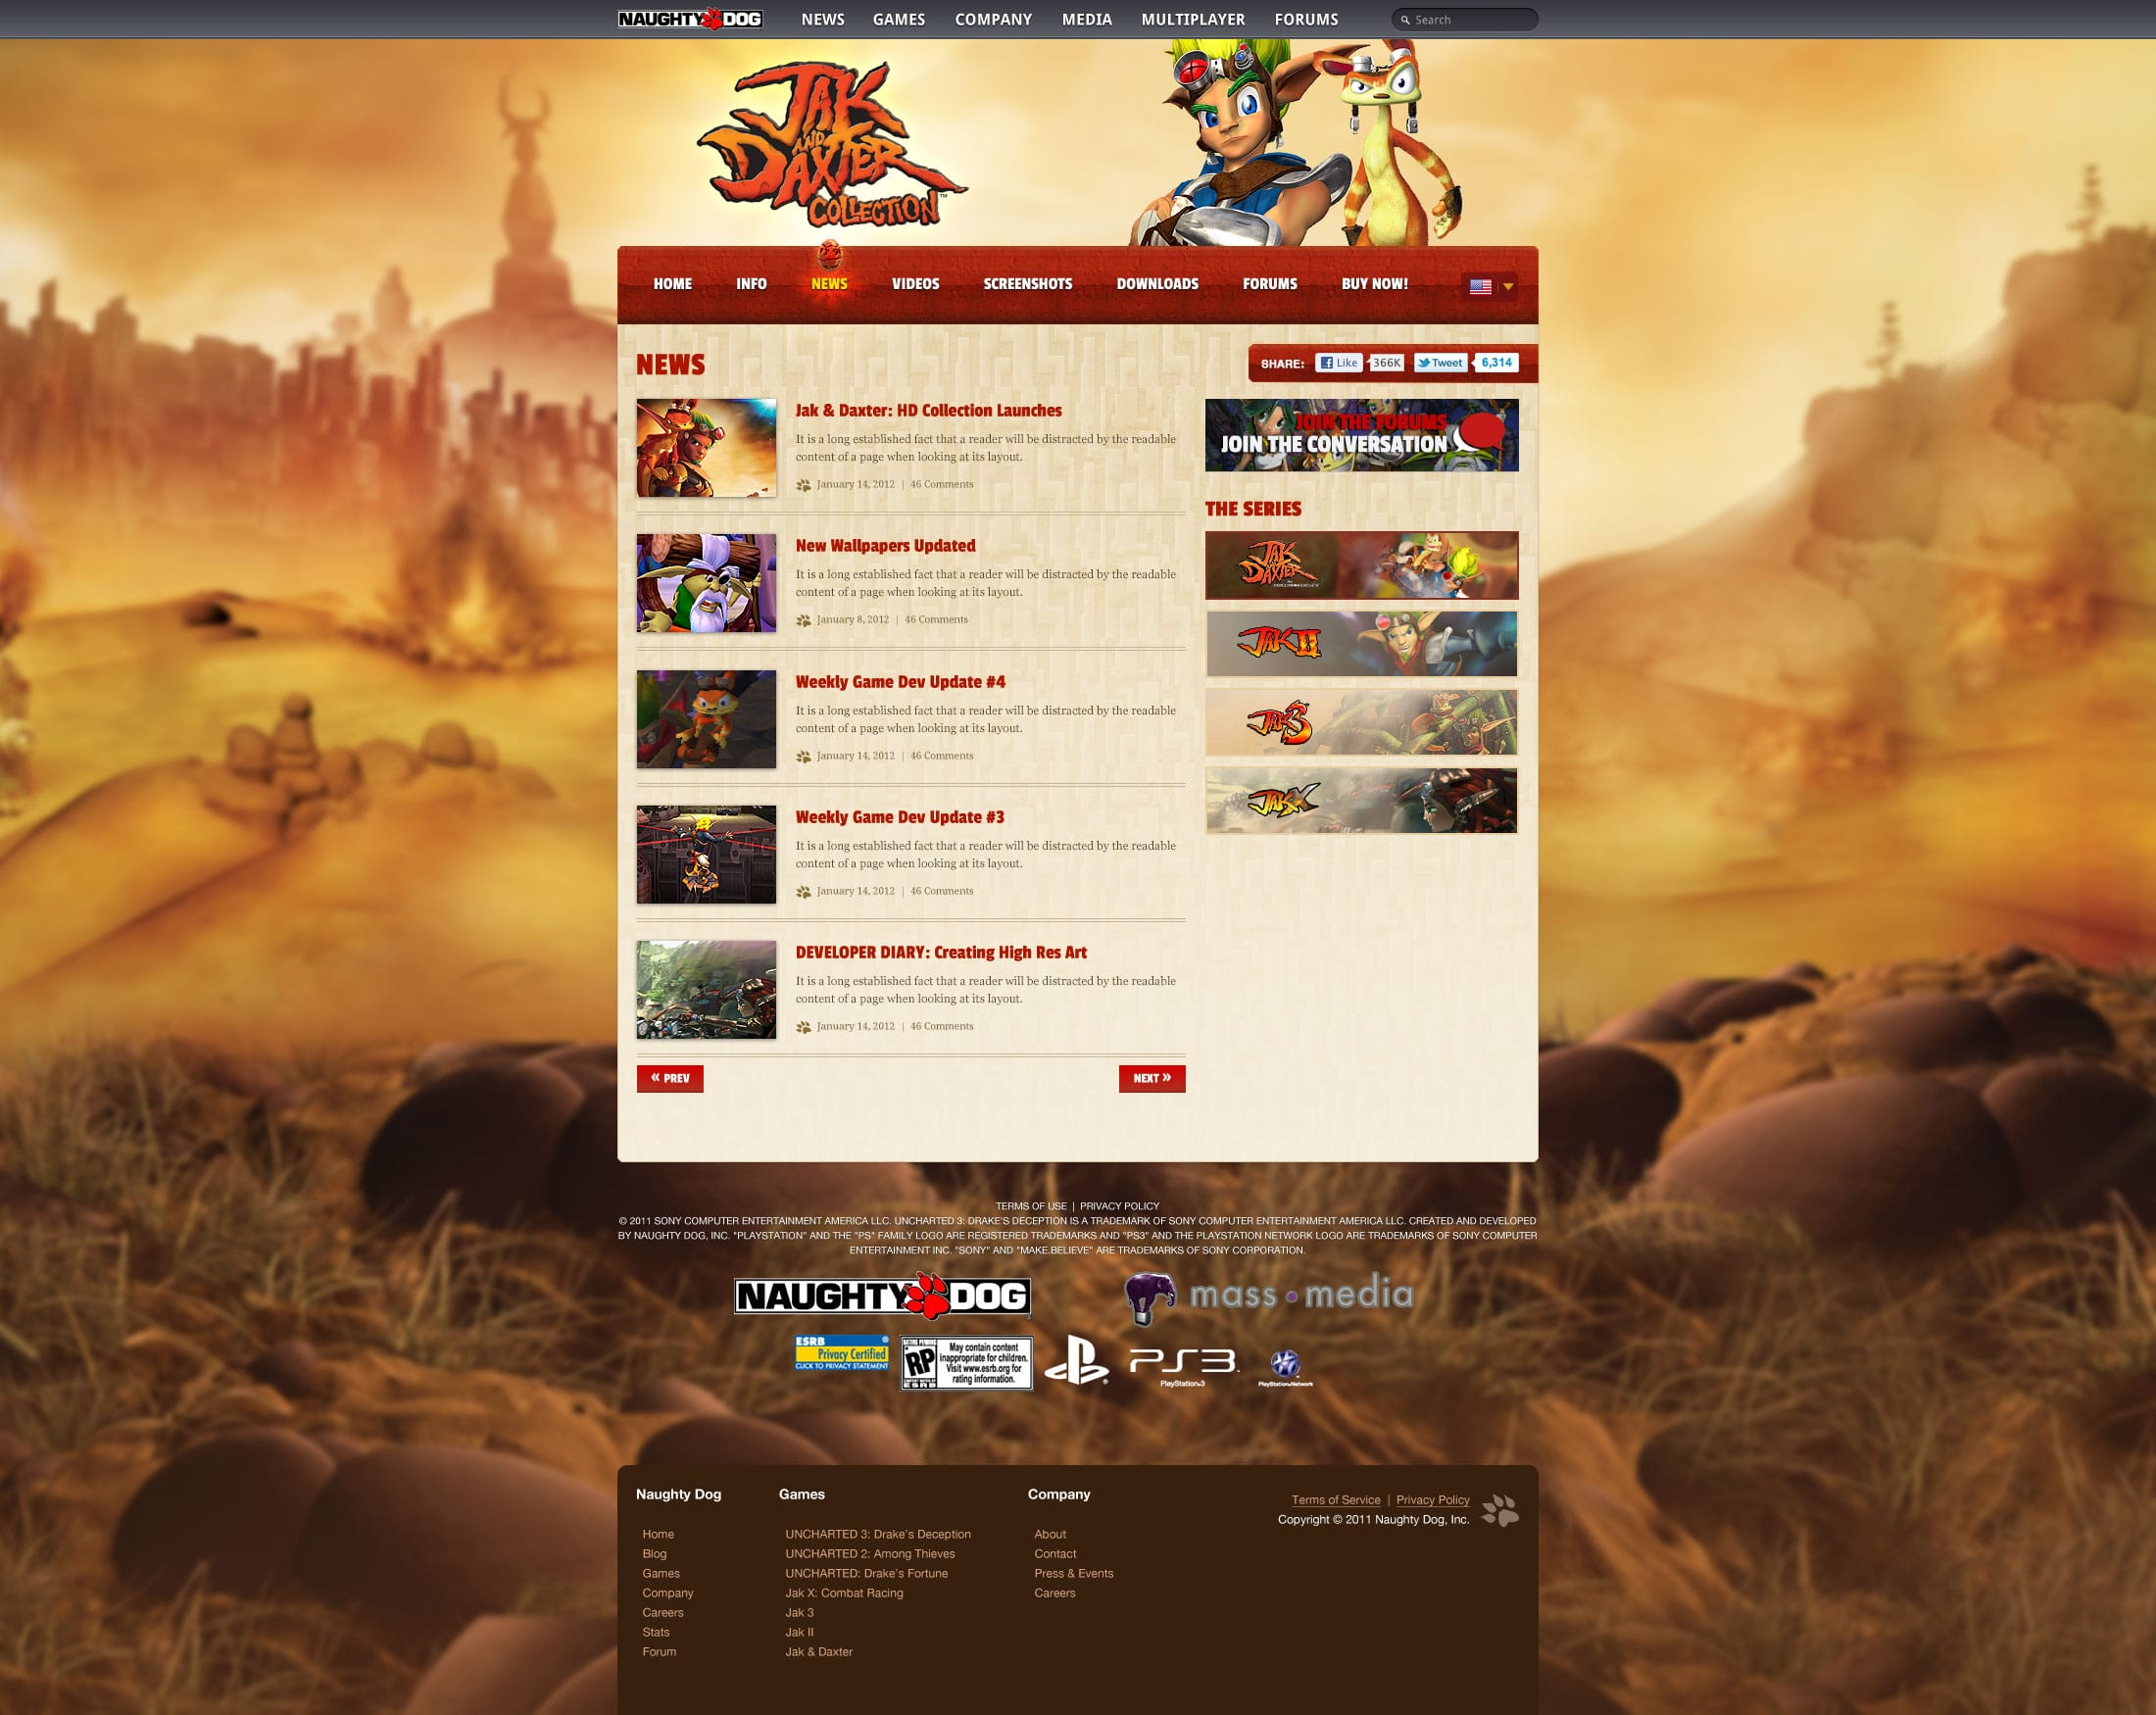 Jak and Daxter Page Design